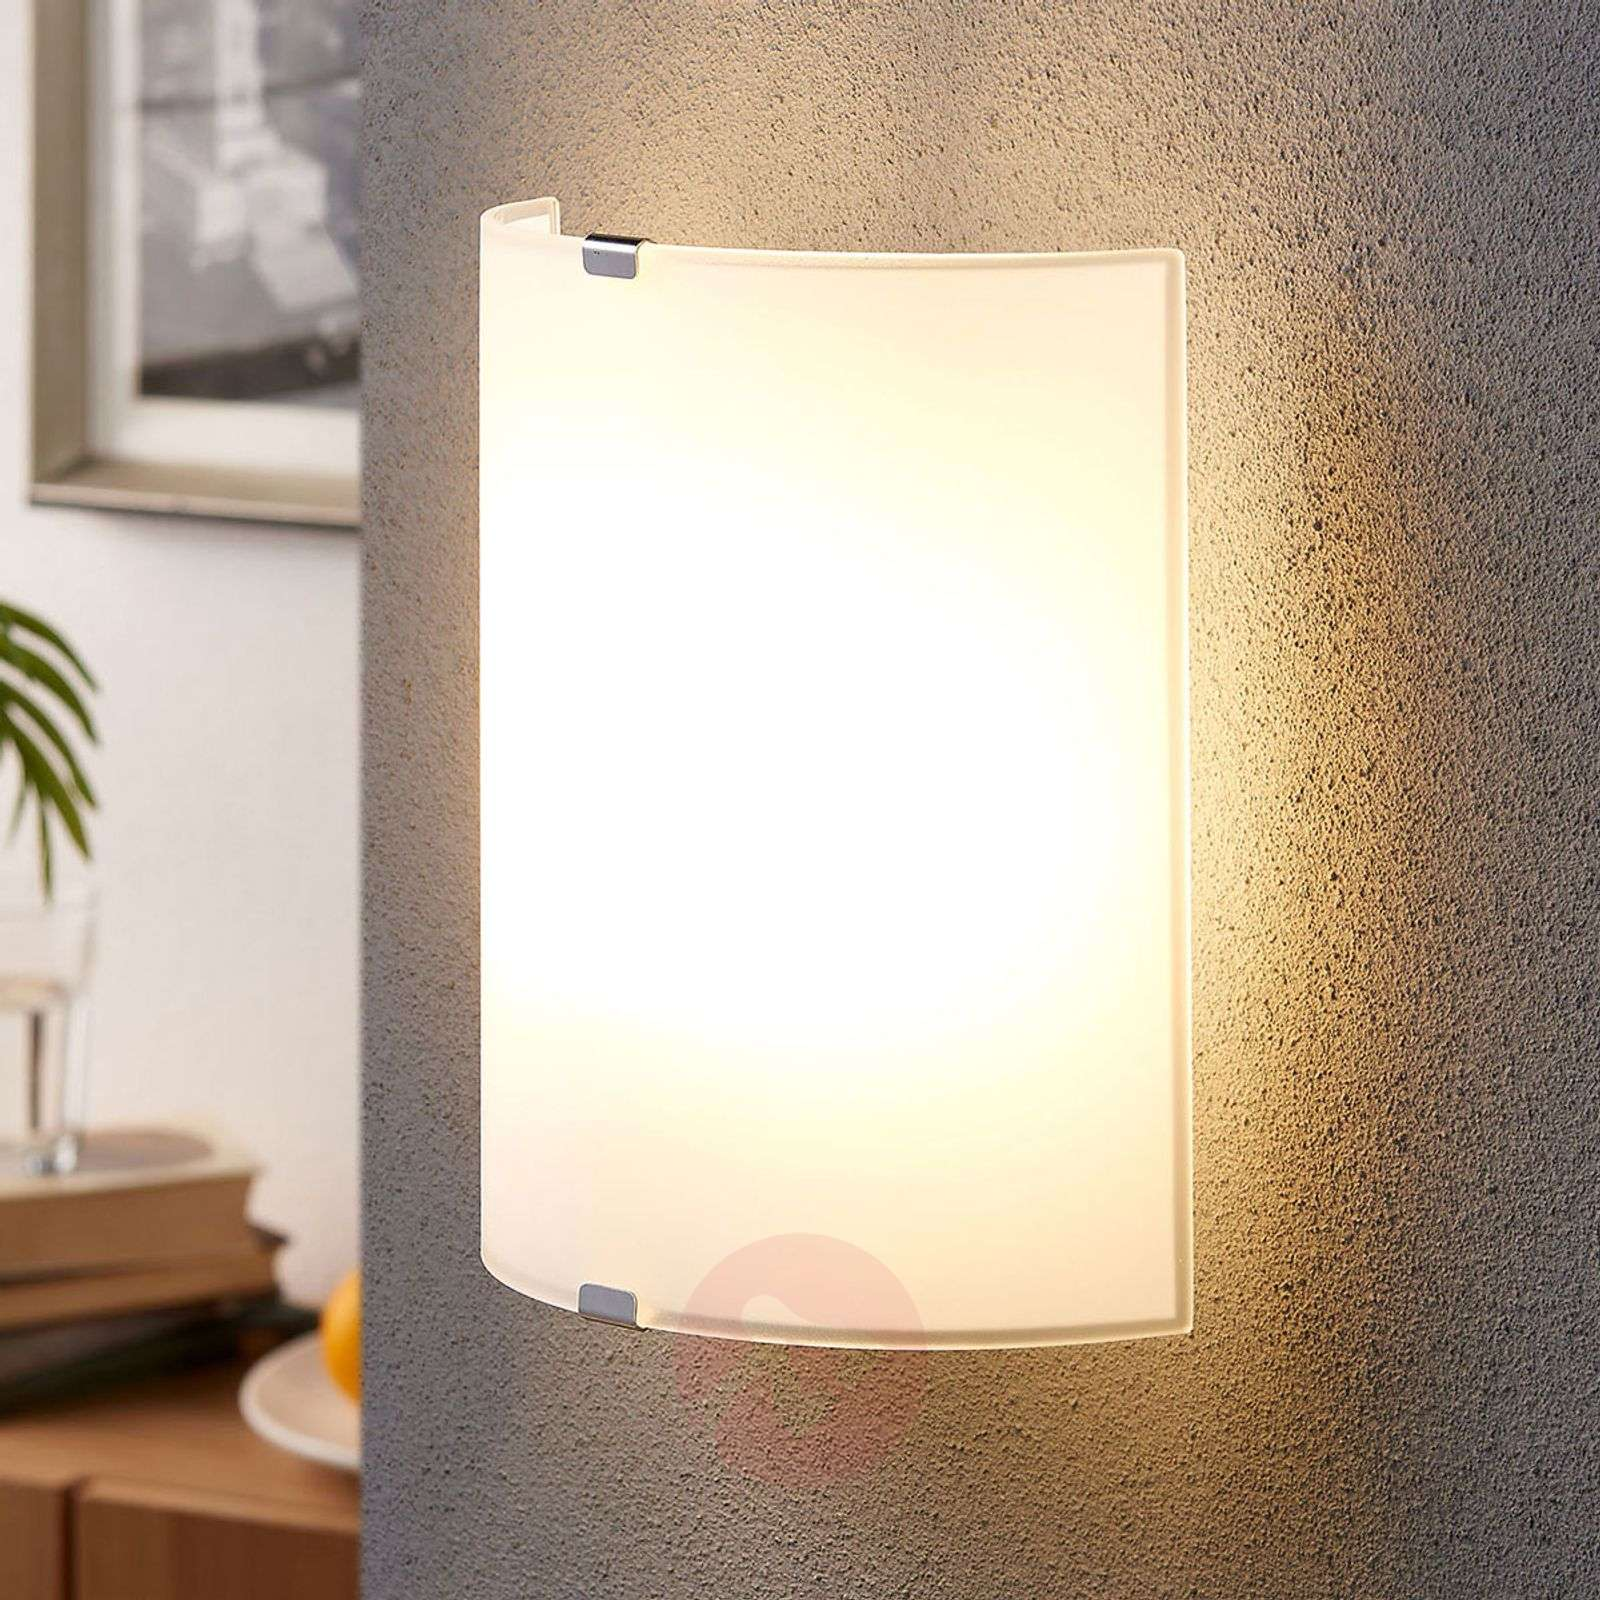 Simple glass wall light Phil-9620800-03